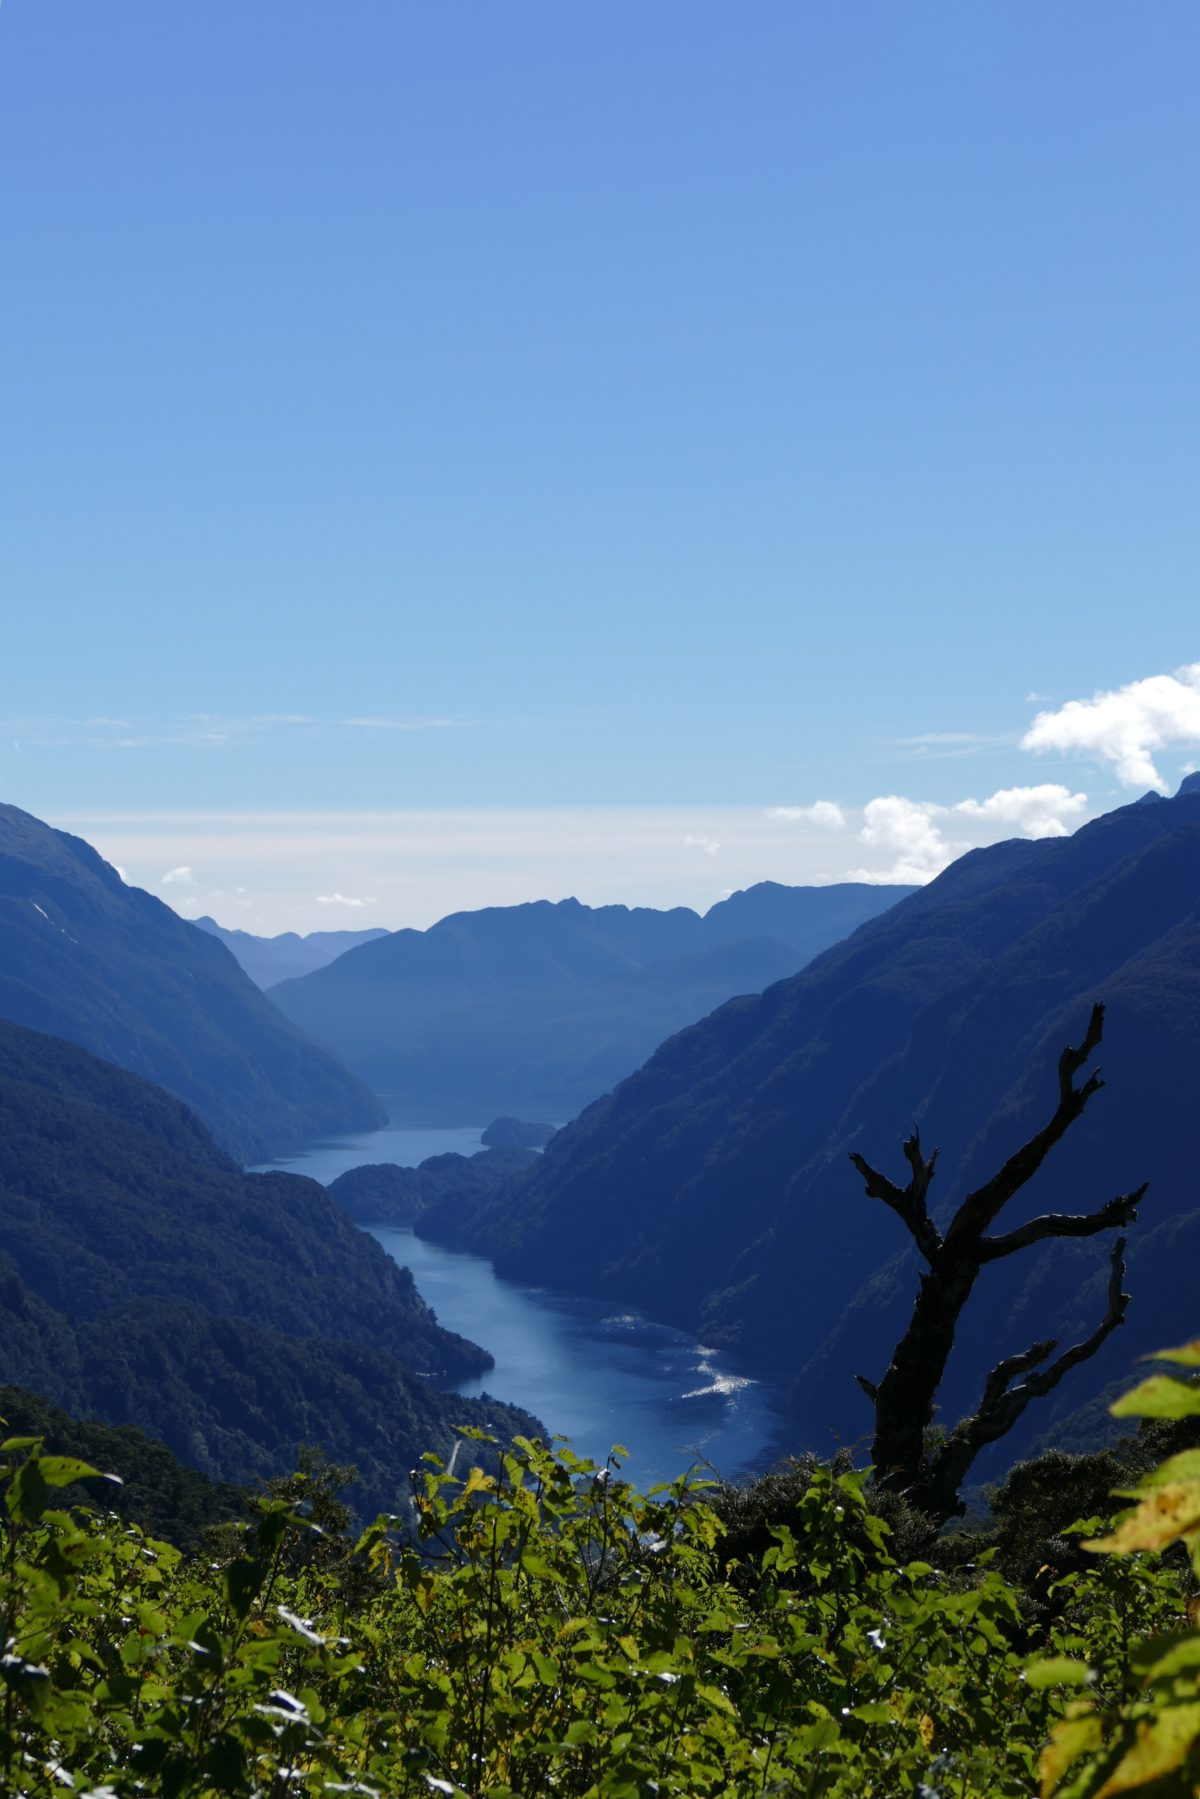 View into (just part of) Doubtful Sound from top of Wilmot Pass. All photos copyright Doug Spencer.